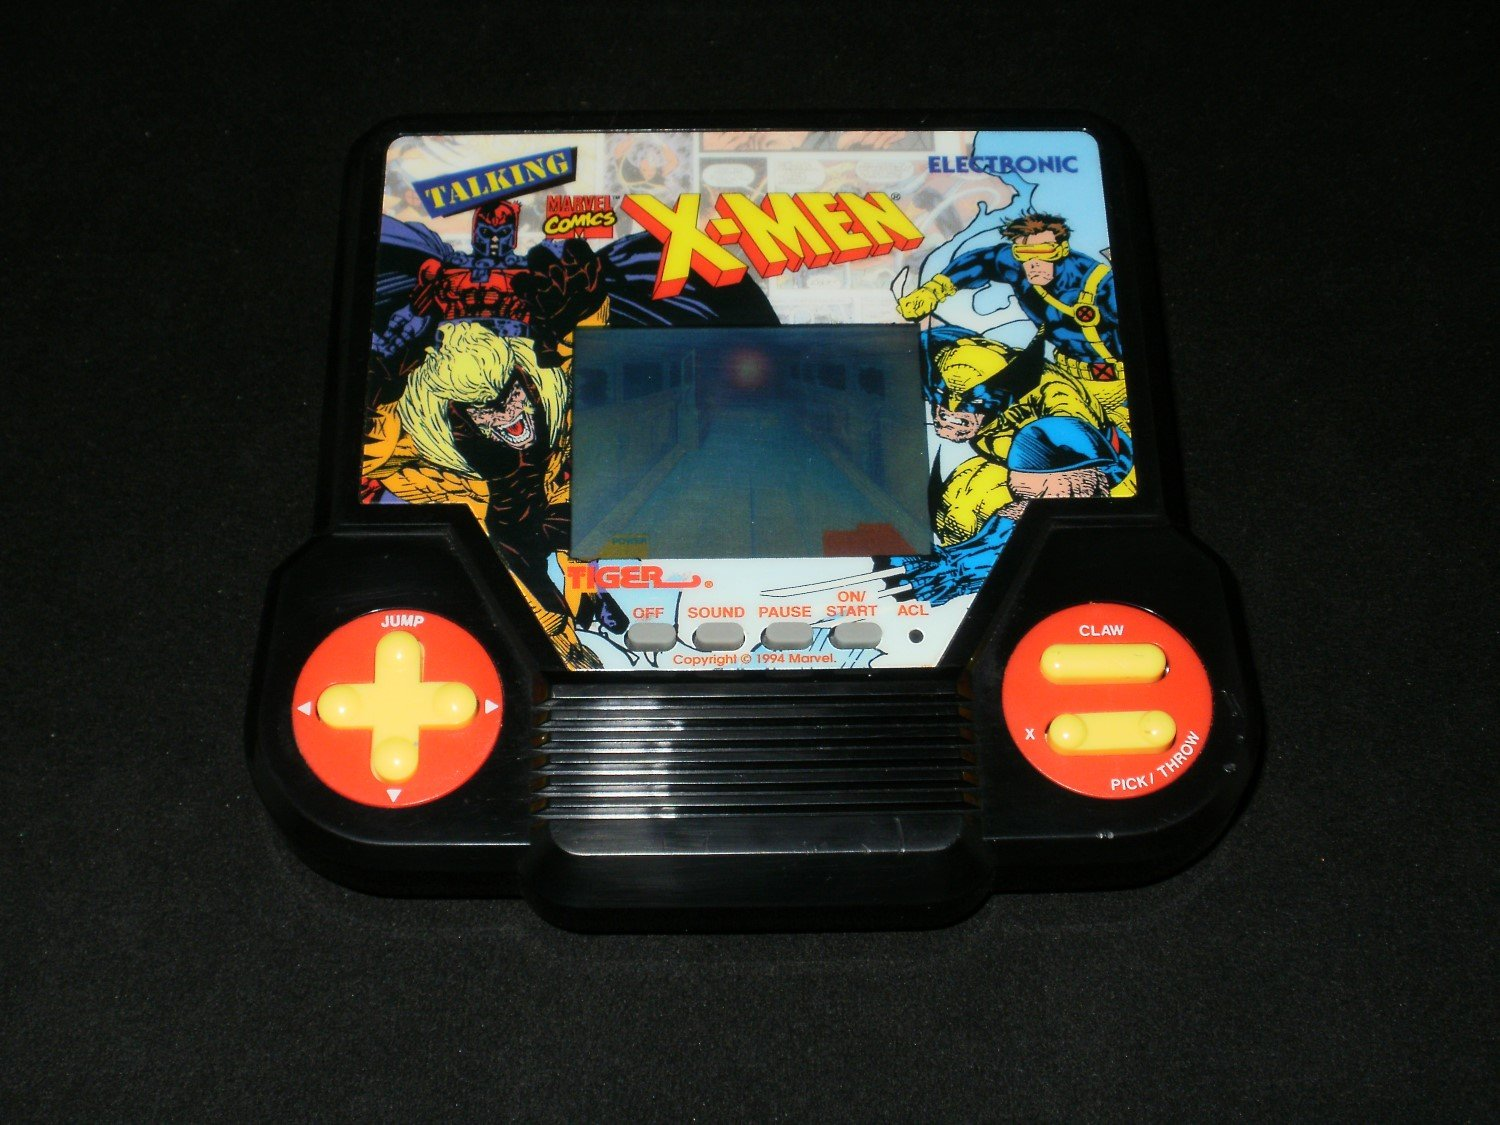 Talking X-Men - Vintage Handheld - Tiger Electronics 1993